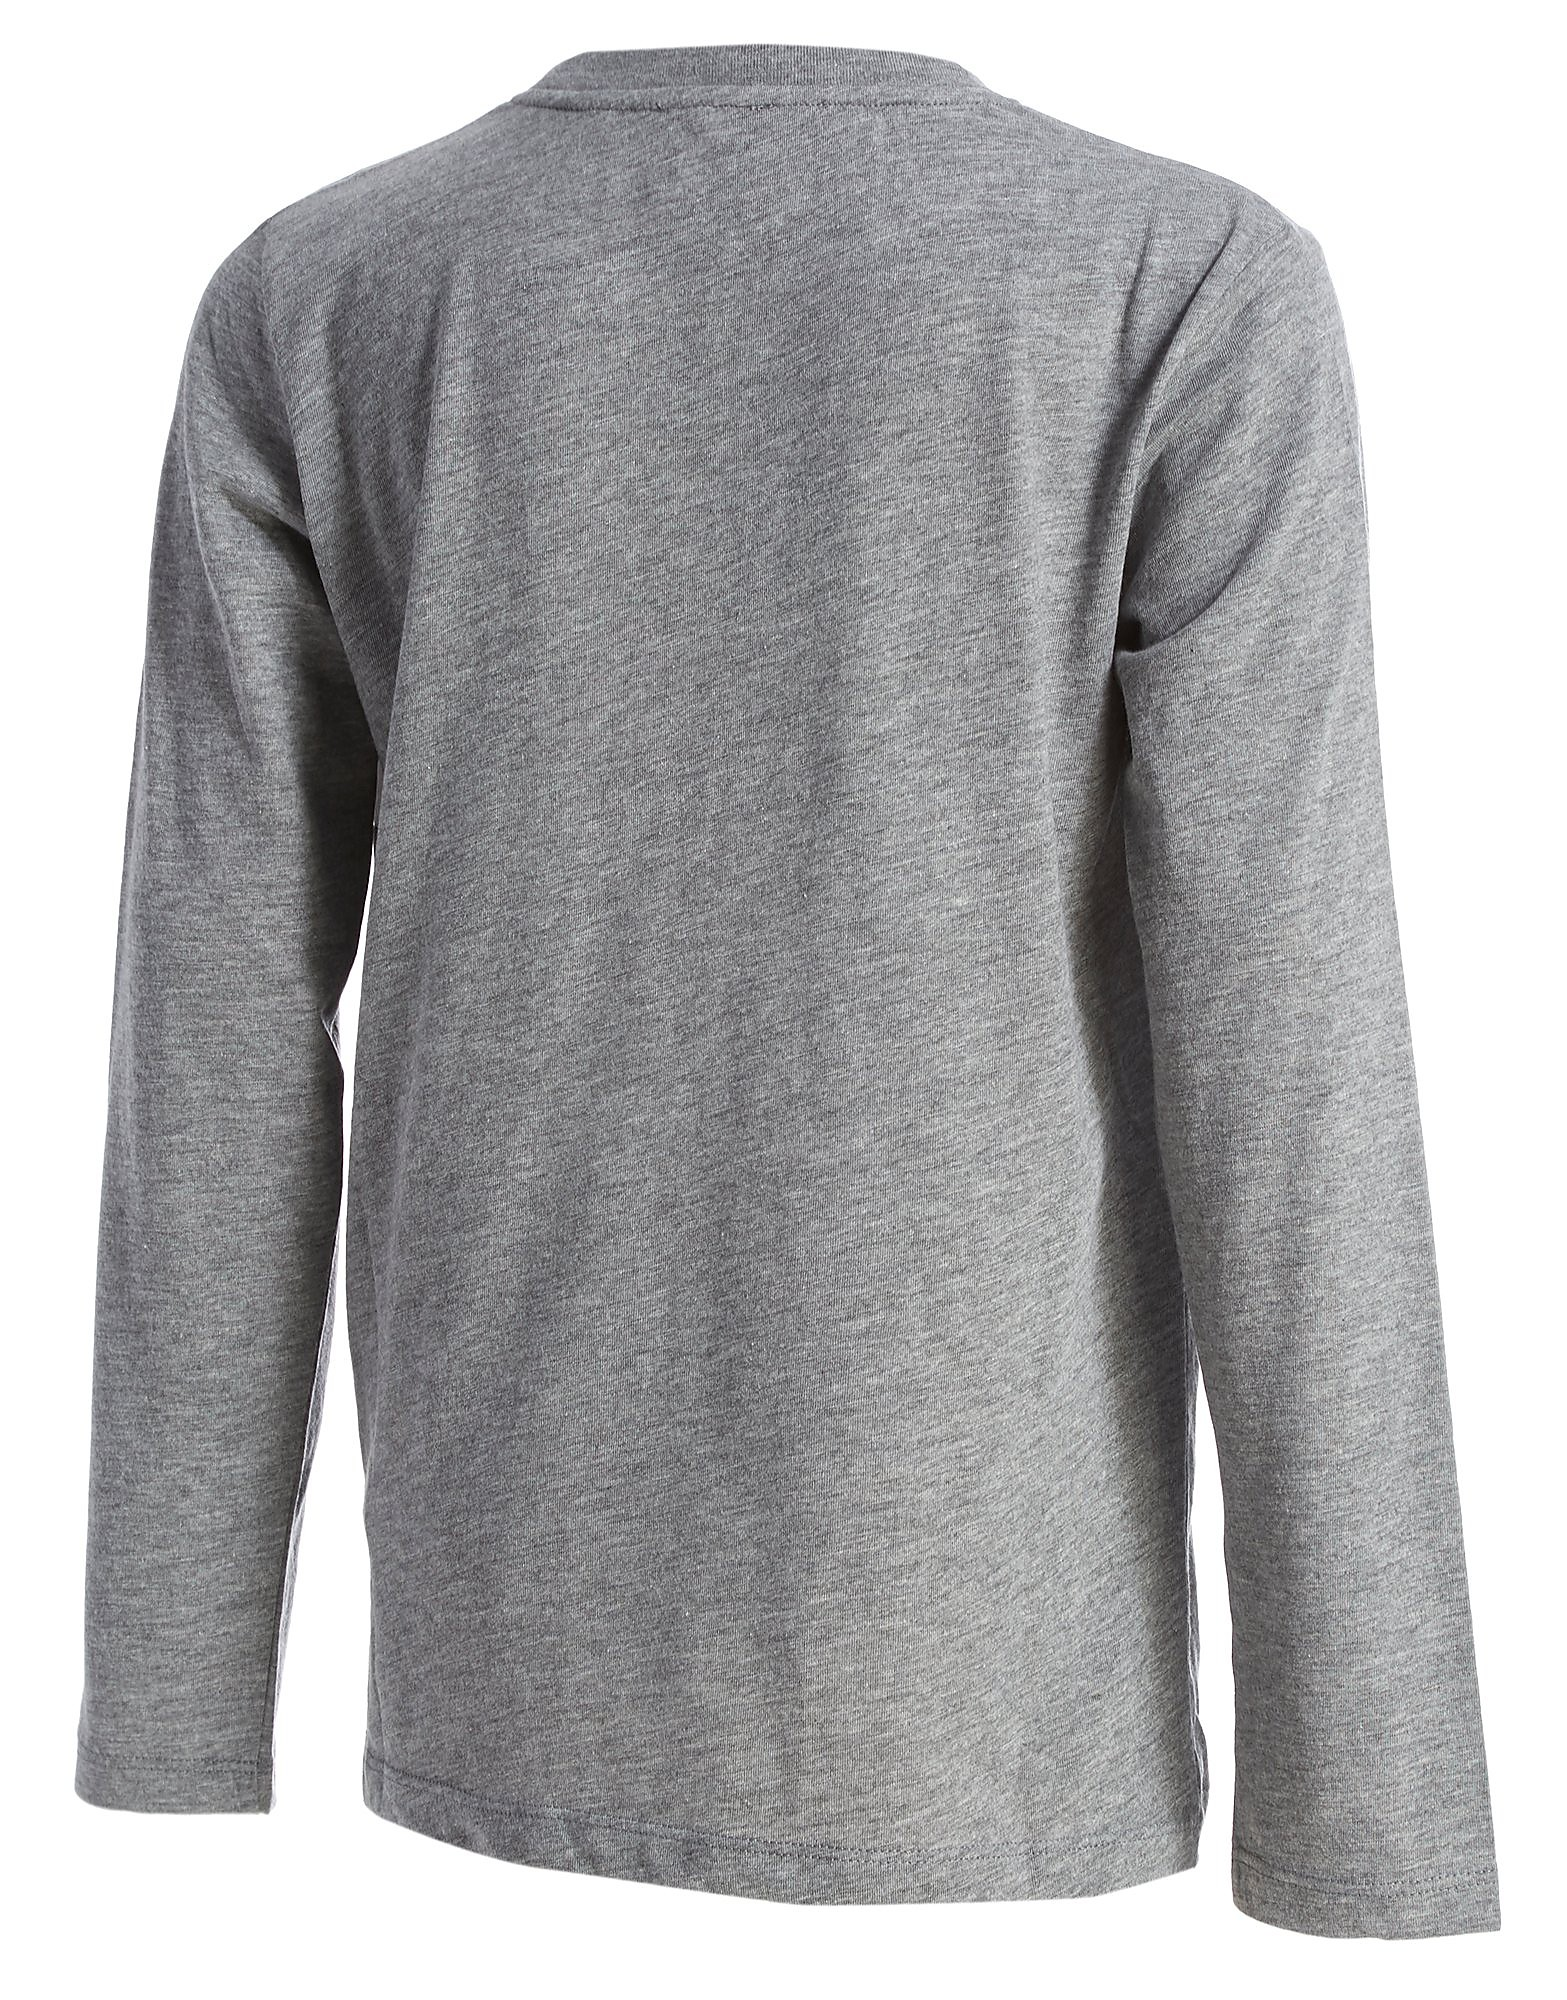 Emporio Armani EA7 Train Colourblock Long Sleeve T-Shirt Junior